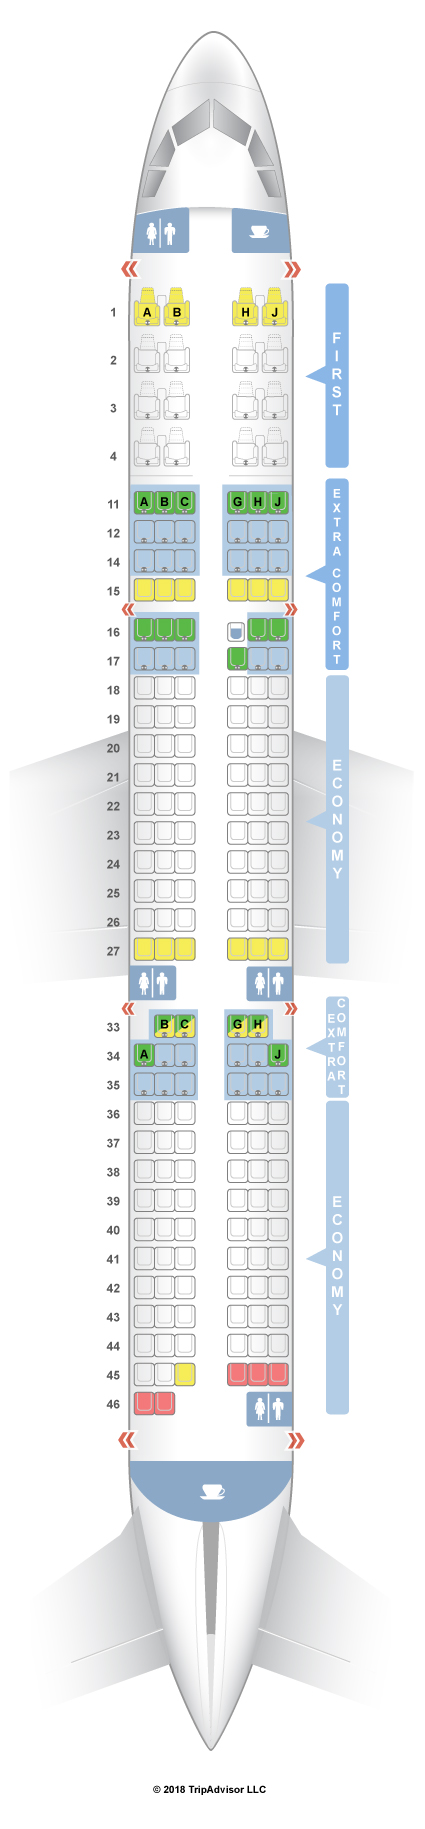 Hawaiian Airlines Seat Assignment Brokeasshome Com